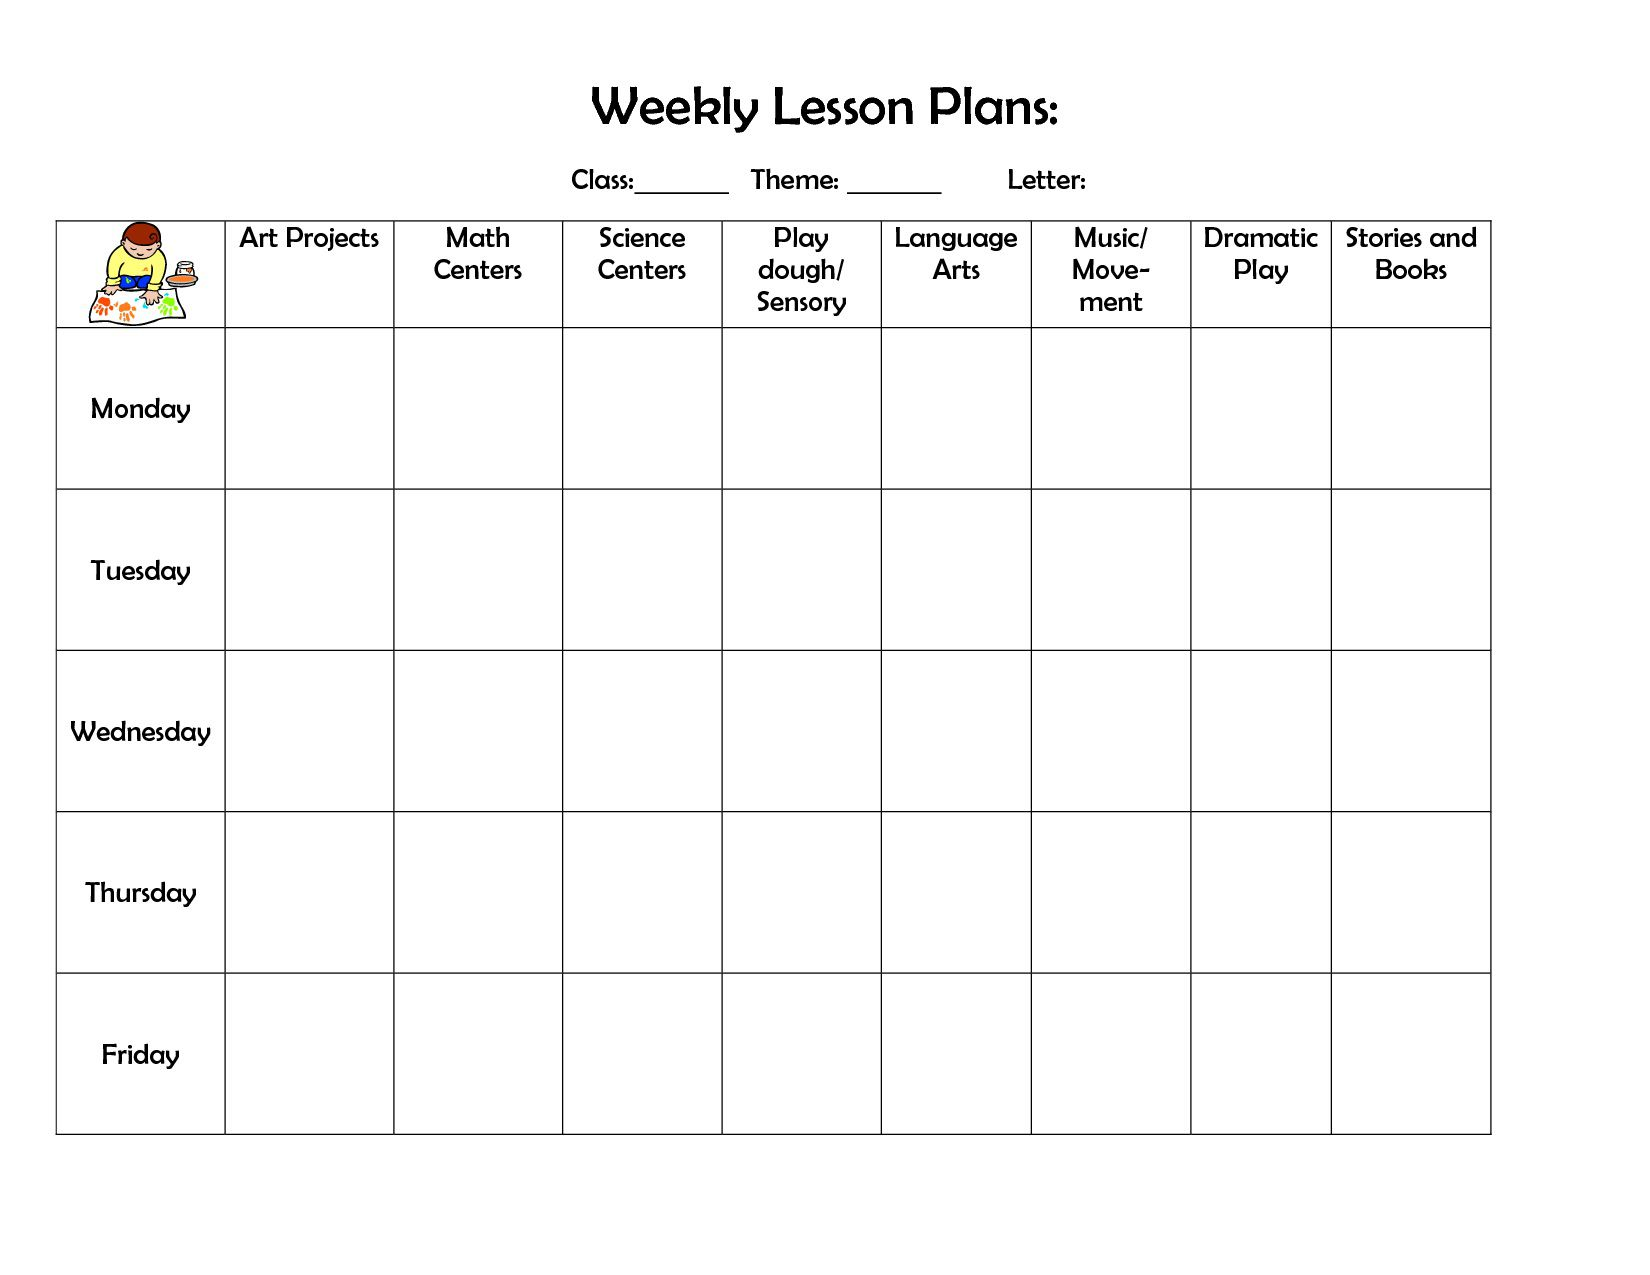 002 Amazing Weekly Lesson Plan Template Inspiration  Blank Free High School Danielson Google DocFull